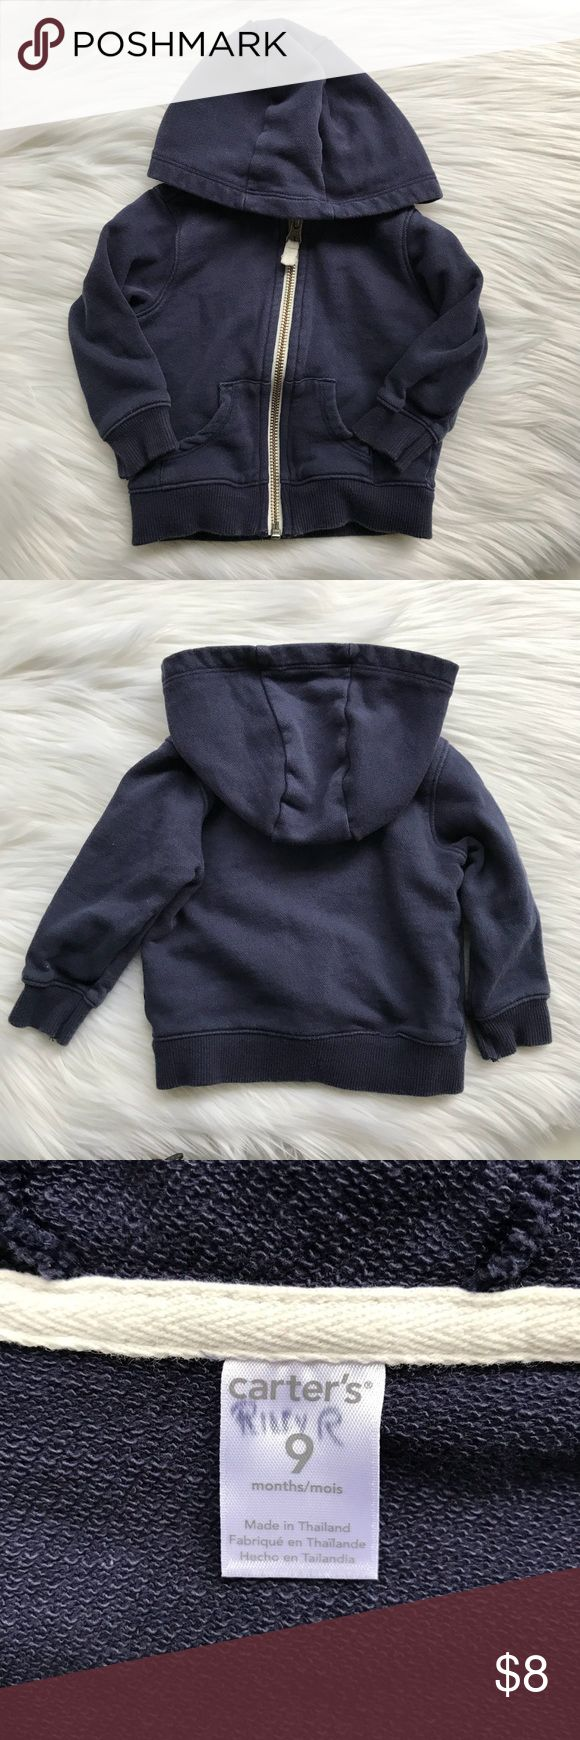 Carter's Zip Up Hoodie Sweatshirt Jacket Navy blue zip up hoodie. Very good used condition. Has some slight fading from washing. My child's name was written on the tag for daycare. Carter's Shirts & Tops Sweatshirts & Hoodies